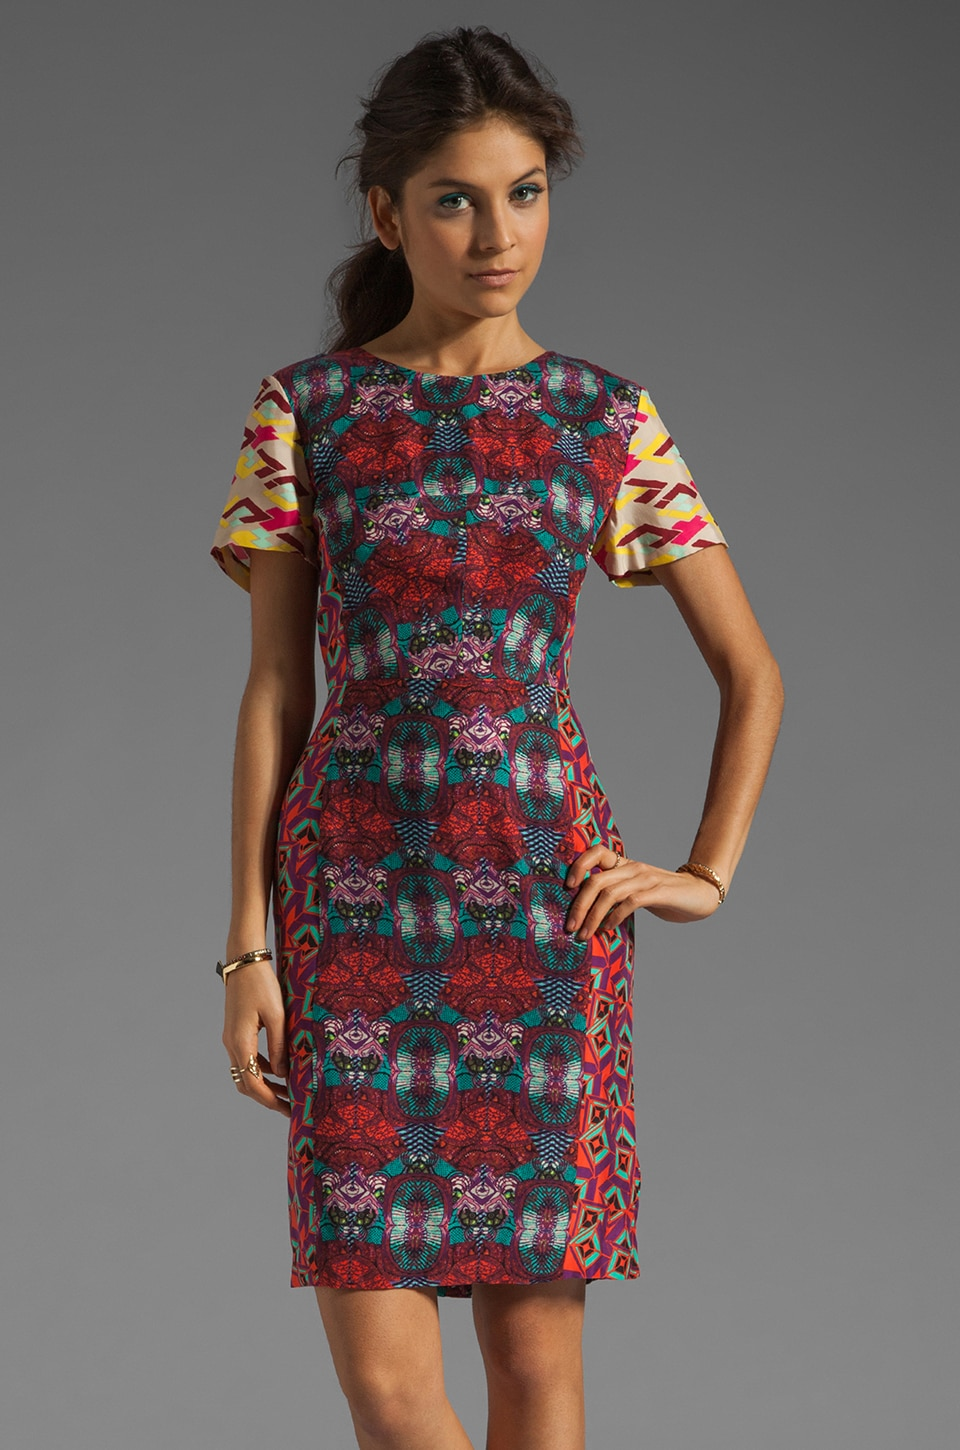 Antik Batik Aron Pencil Dress in Fuchsia